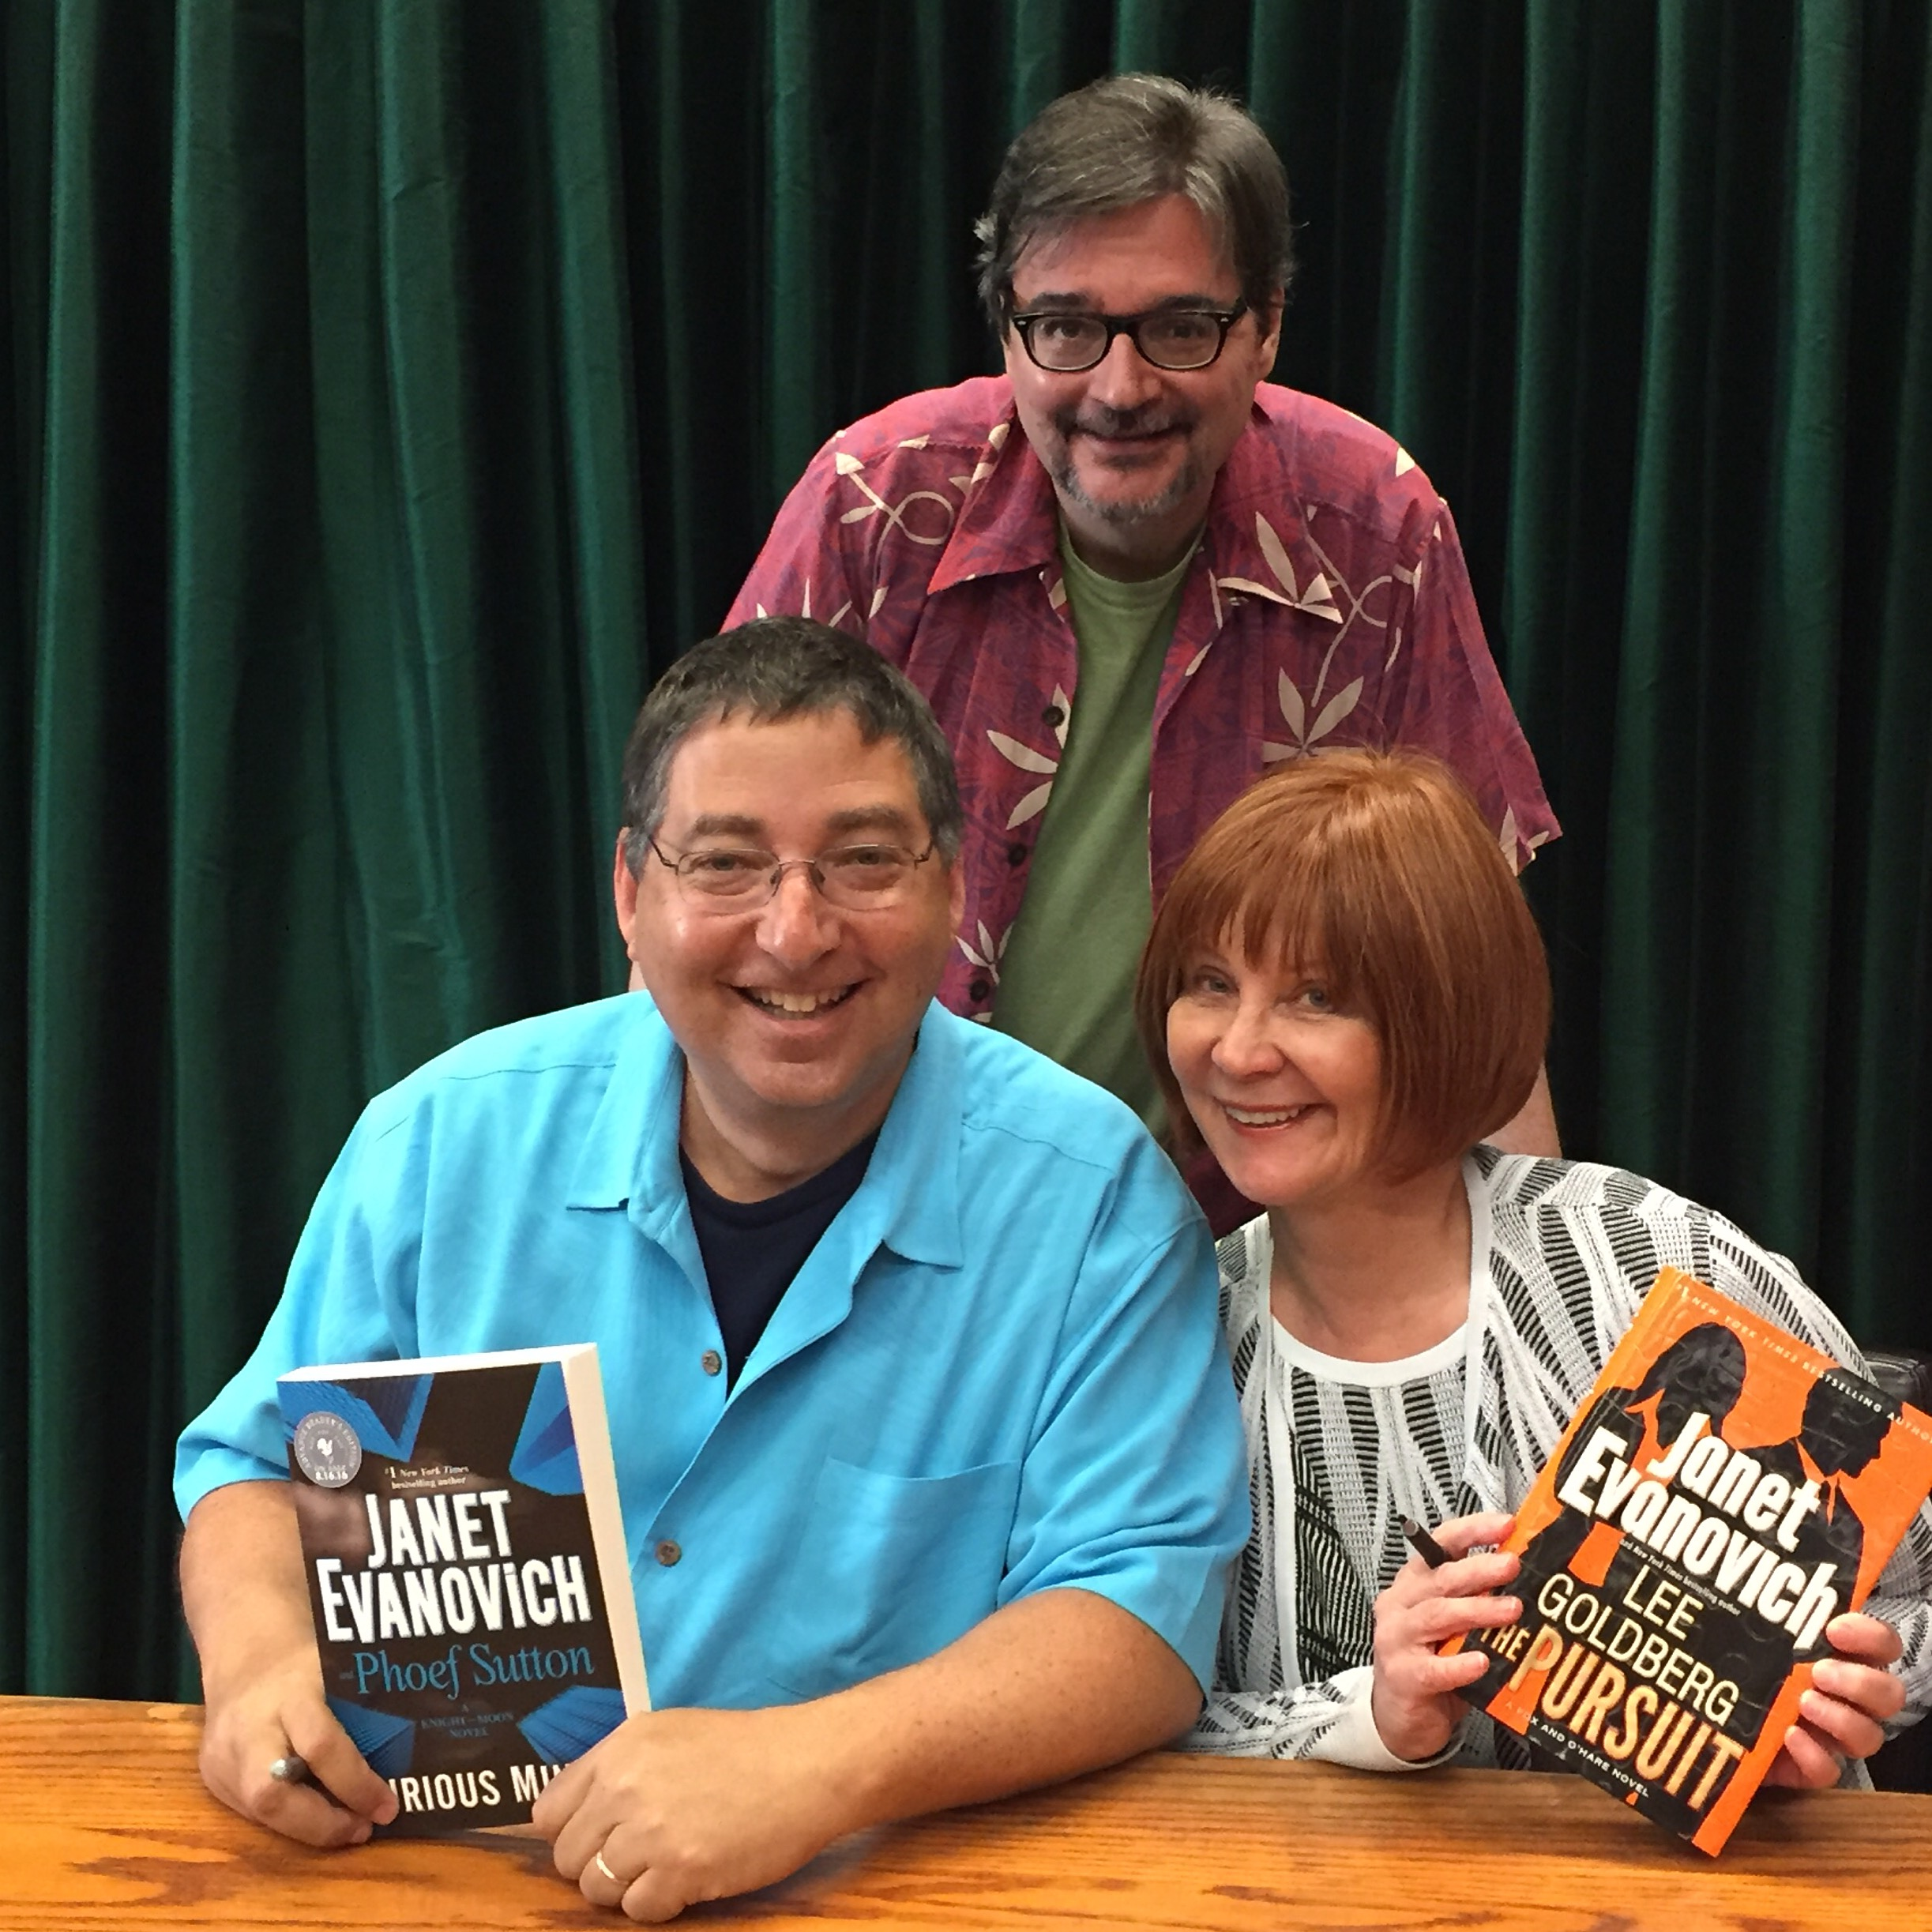 Janet Evanovich and her hunky co-authors Lee and Phoef Sutton at Vroman's in Pasadena 6/22/16